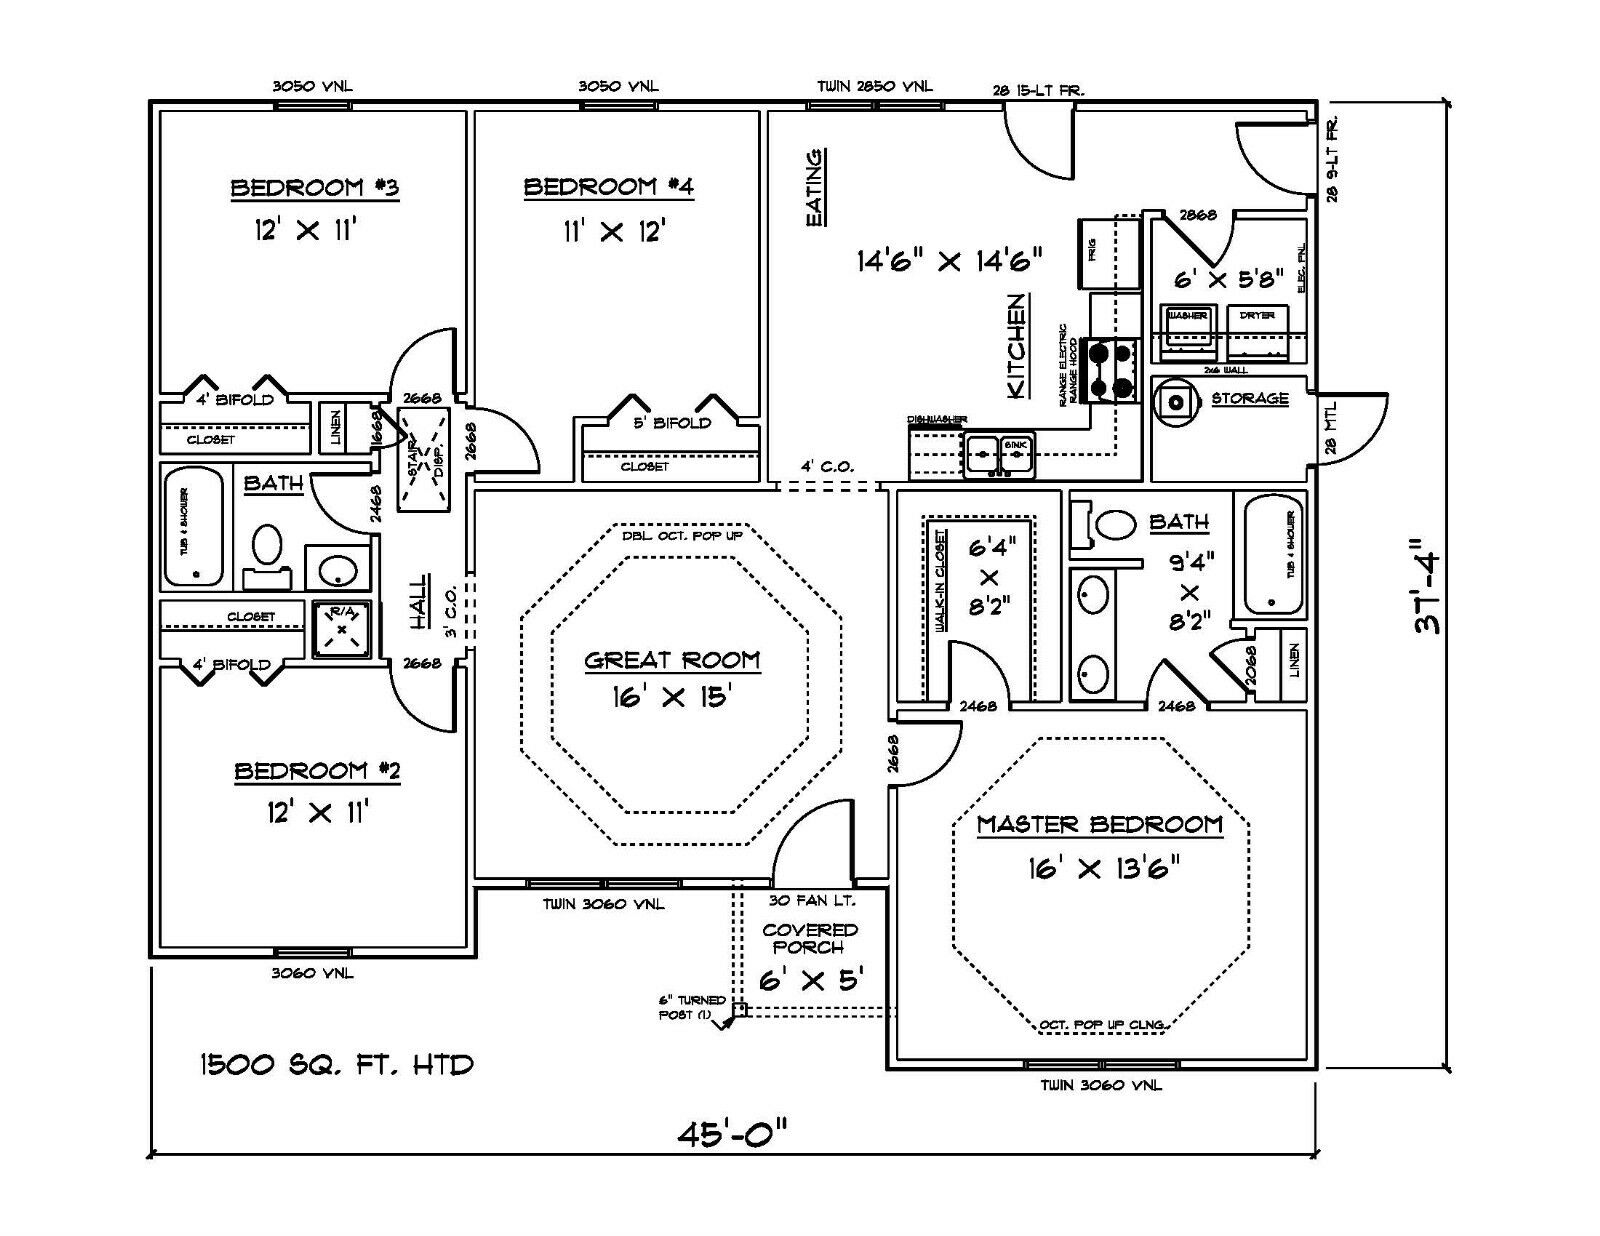 house plan of 1500 sq ft ahomeplan com